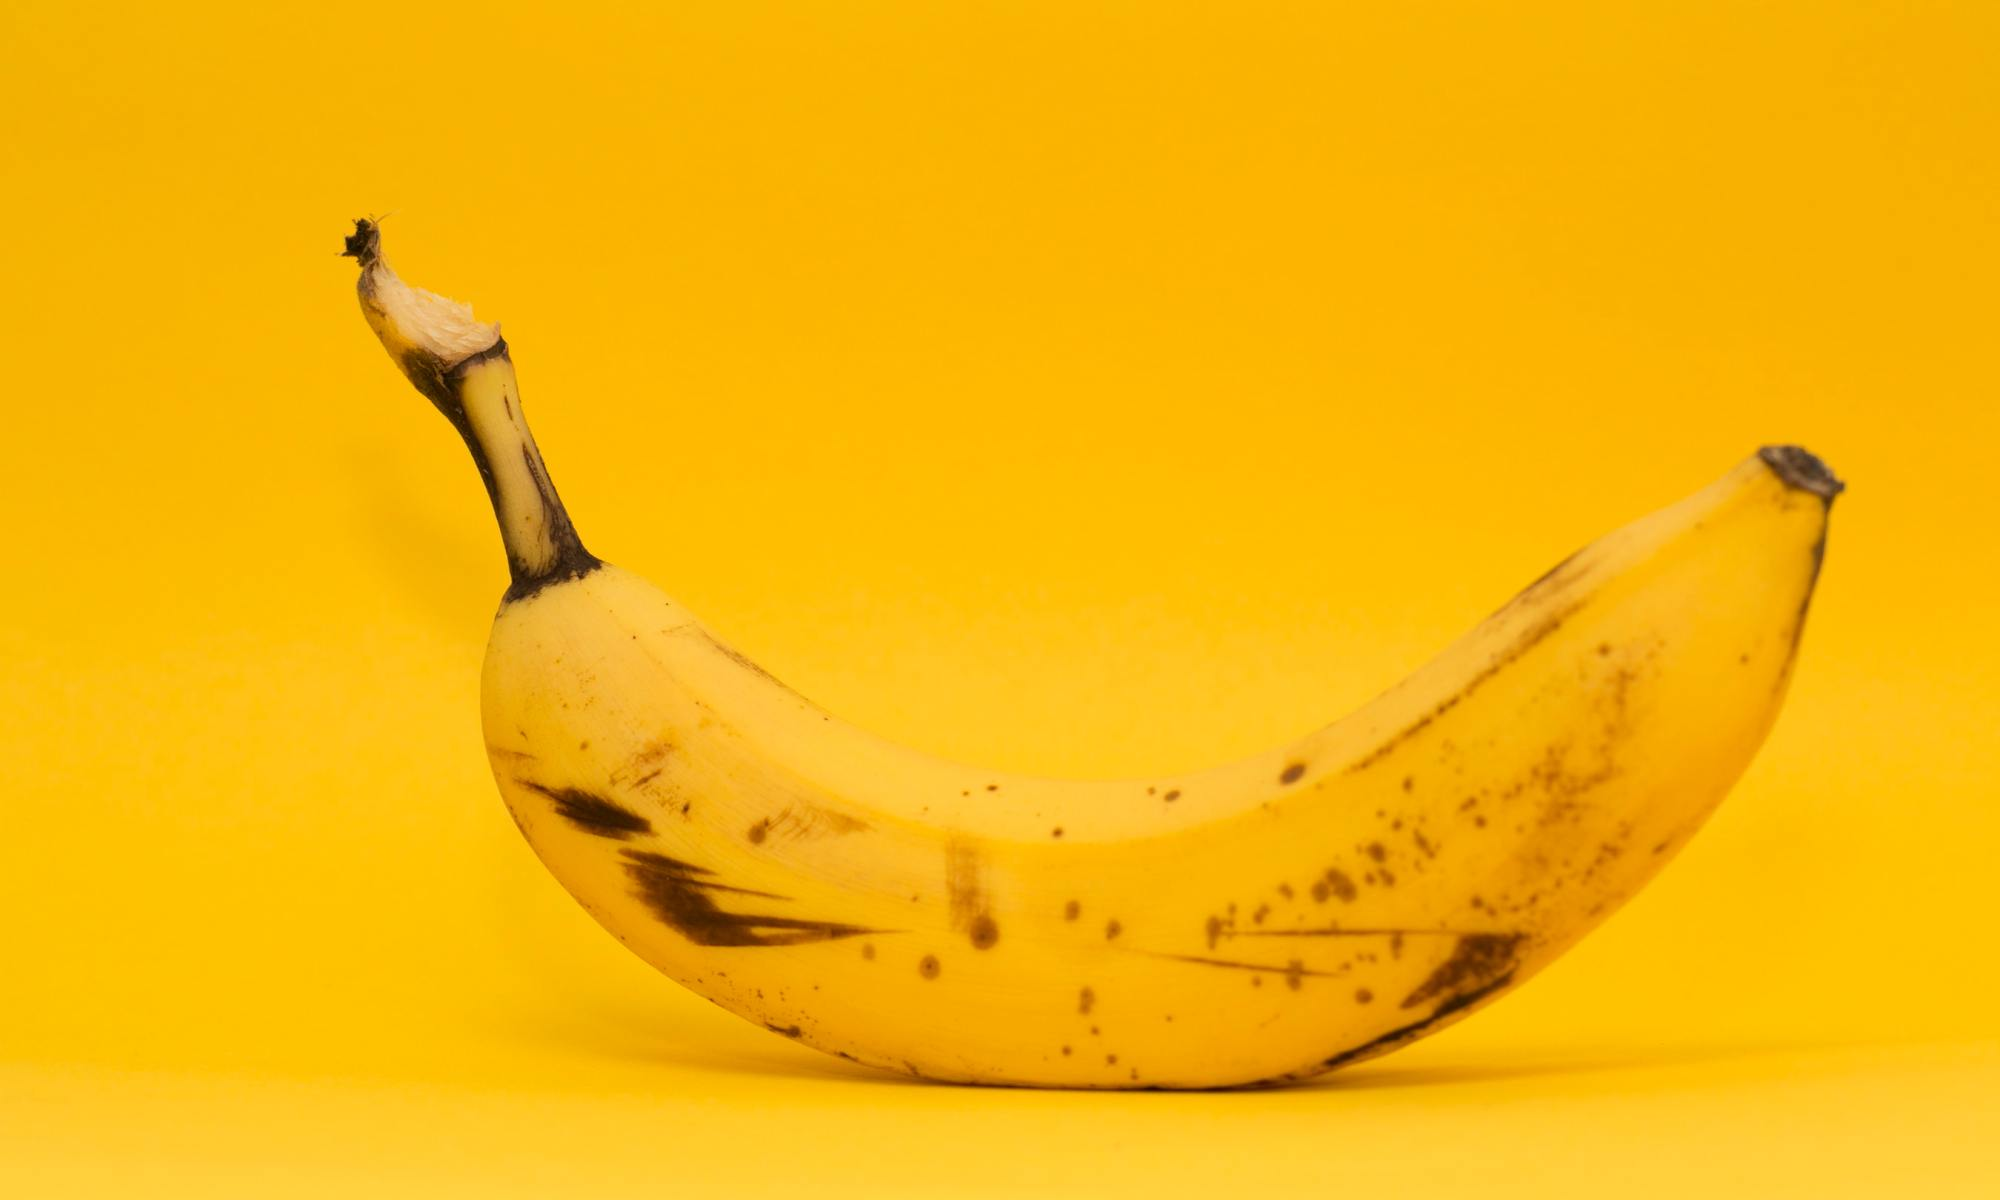 bananas prevent cancer